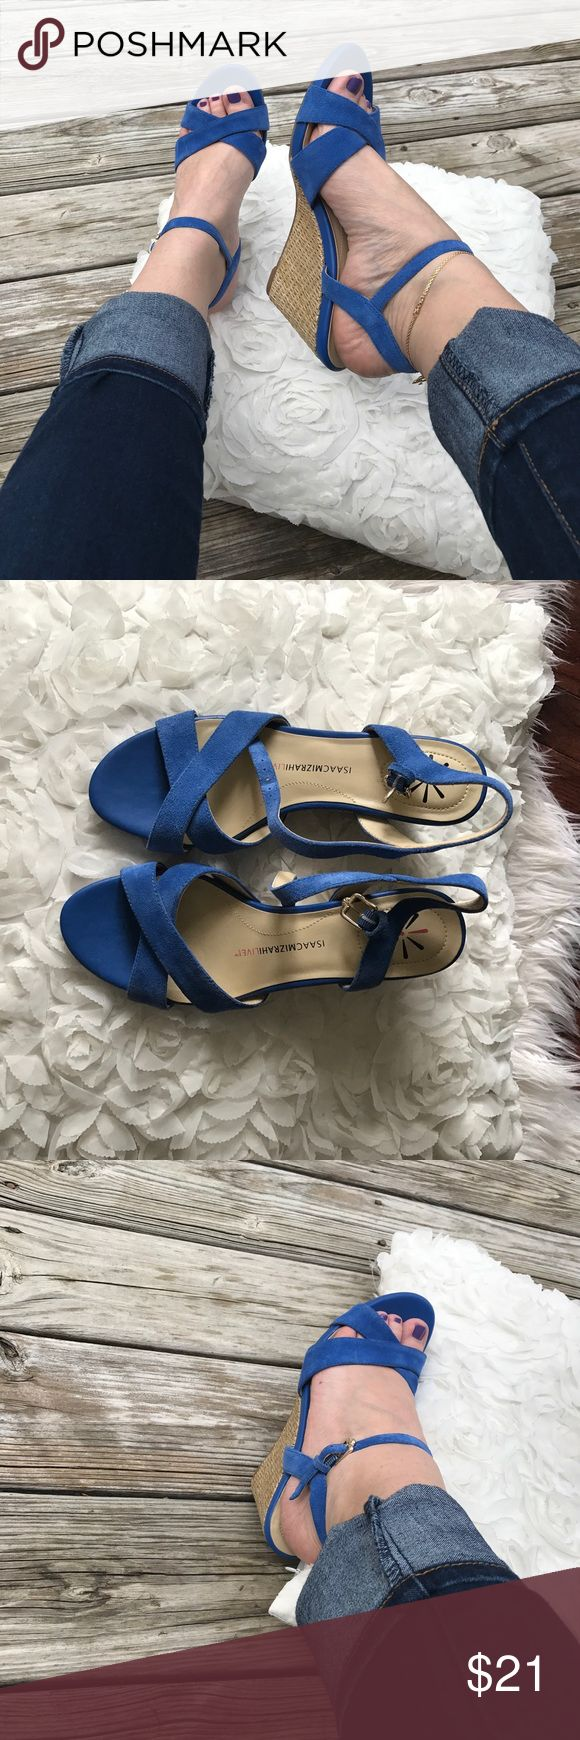 ISAAC MIZRAHI royal blue wedge sandals Beautiful summer shoes that are polished and stylish enough to wear at the office. Never worn, shoes are in new condition. No trades!!! Isaac Mizrahi Shoes